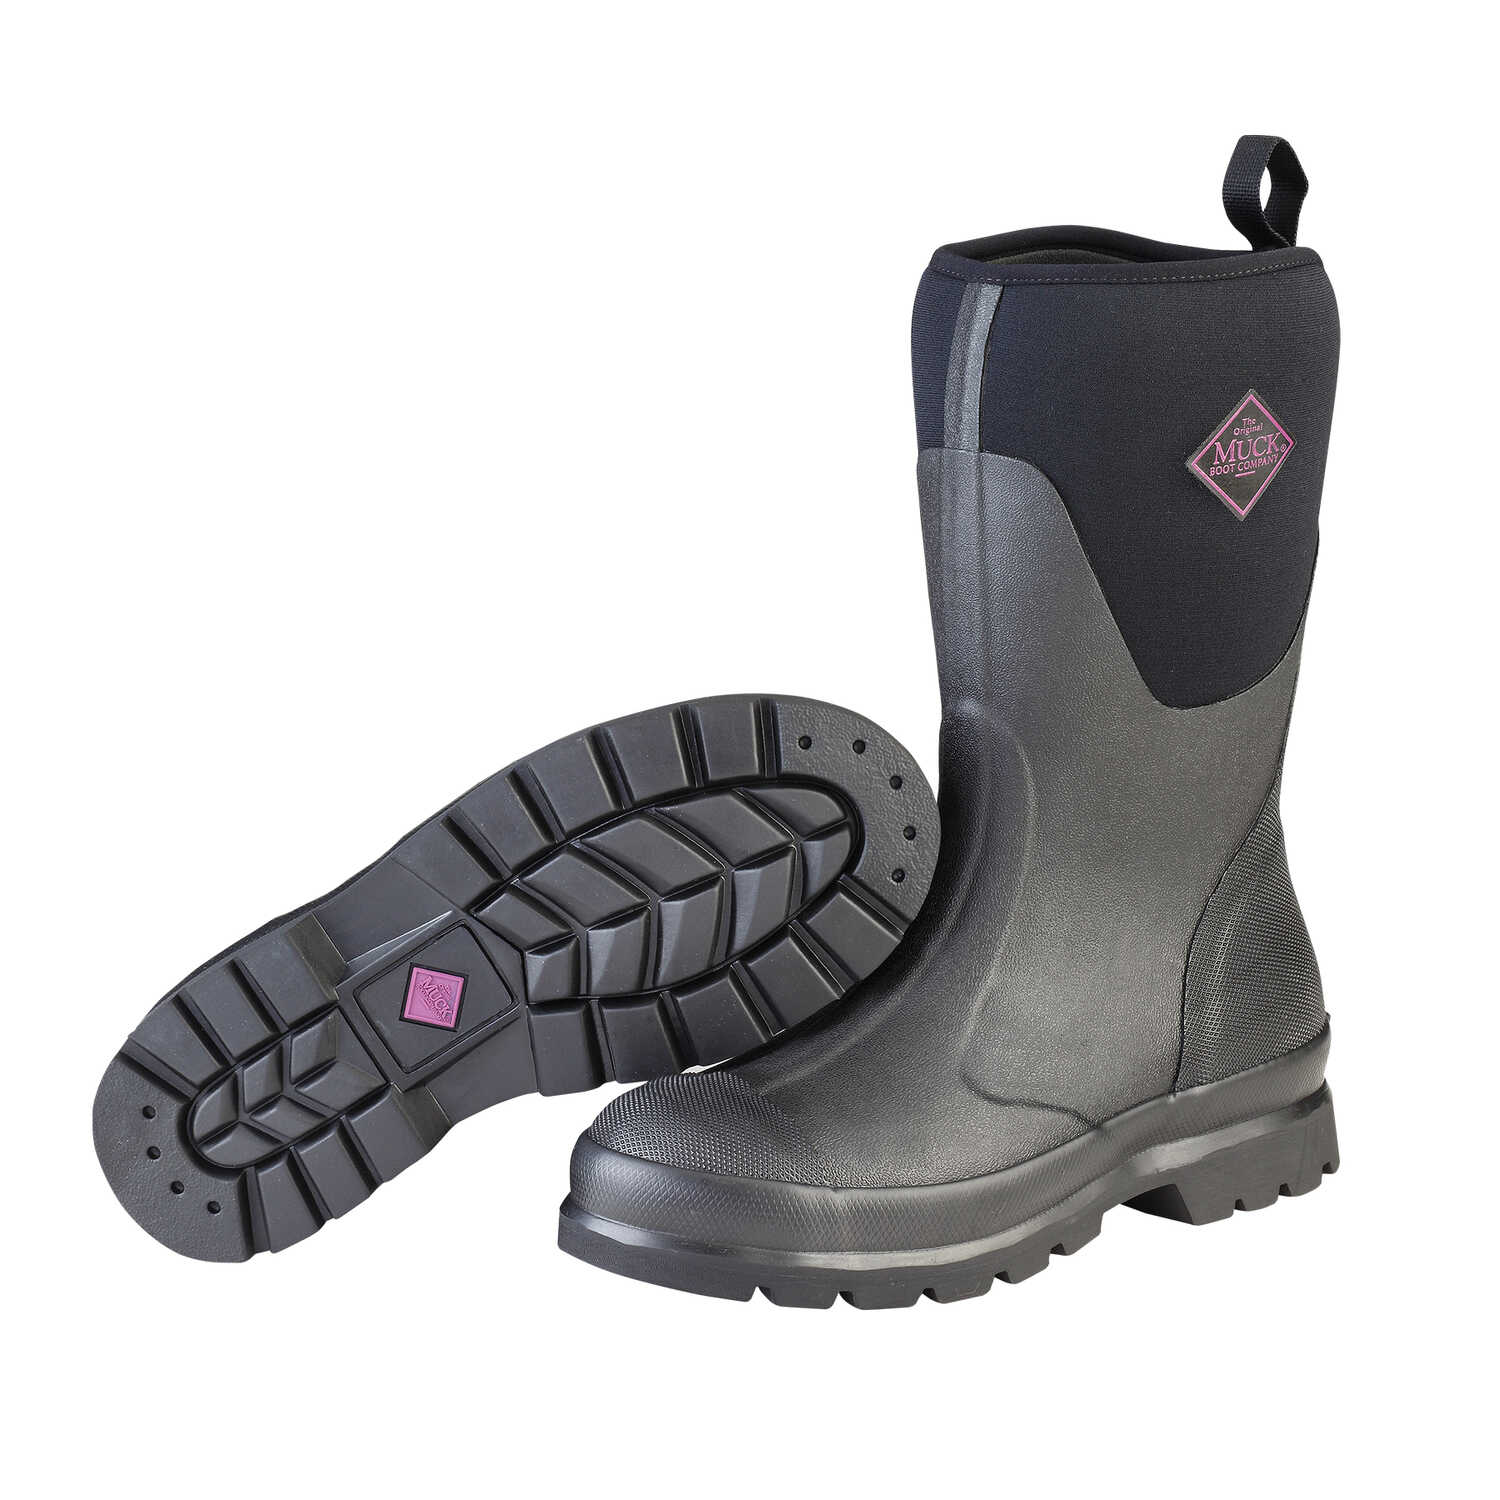 The Original Muck Boot Company  Chore Mid  Women's  Boots  7 US  Black